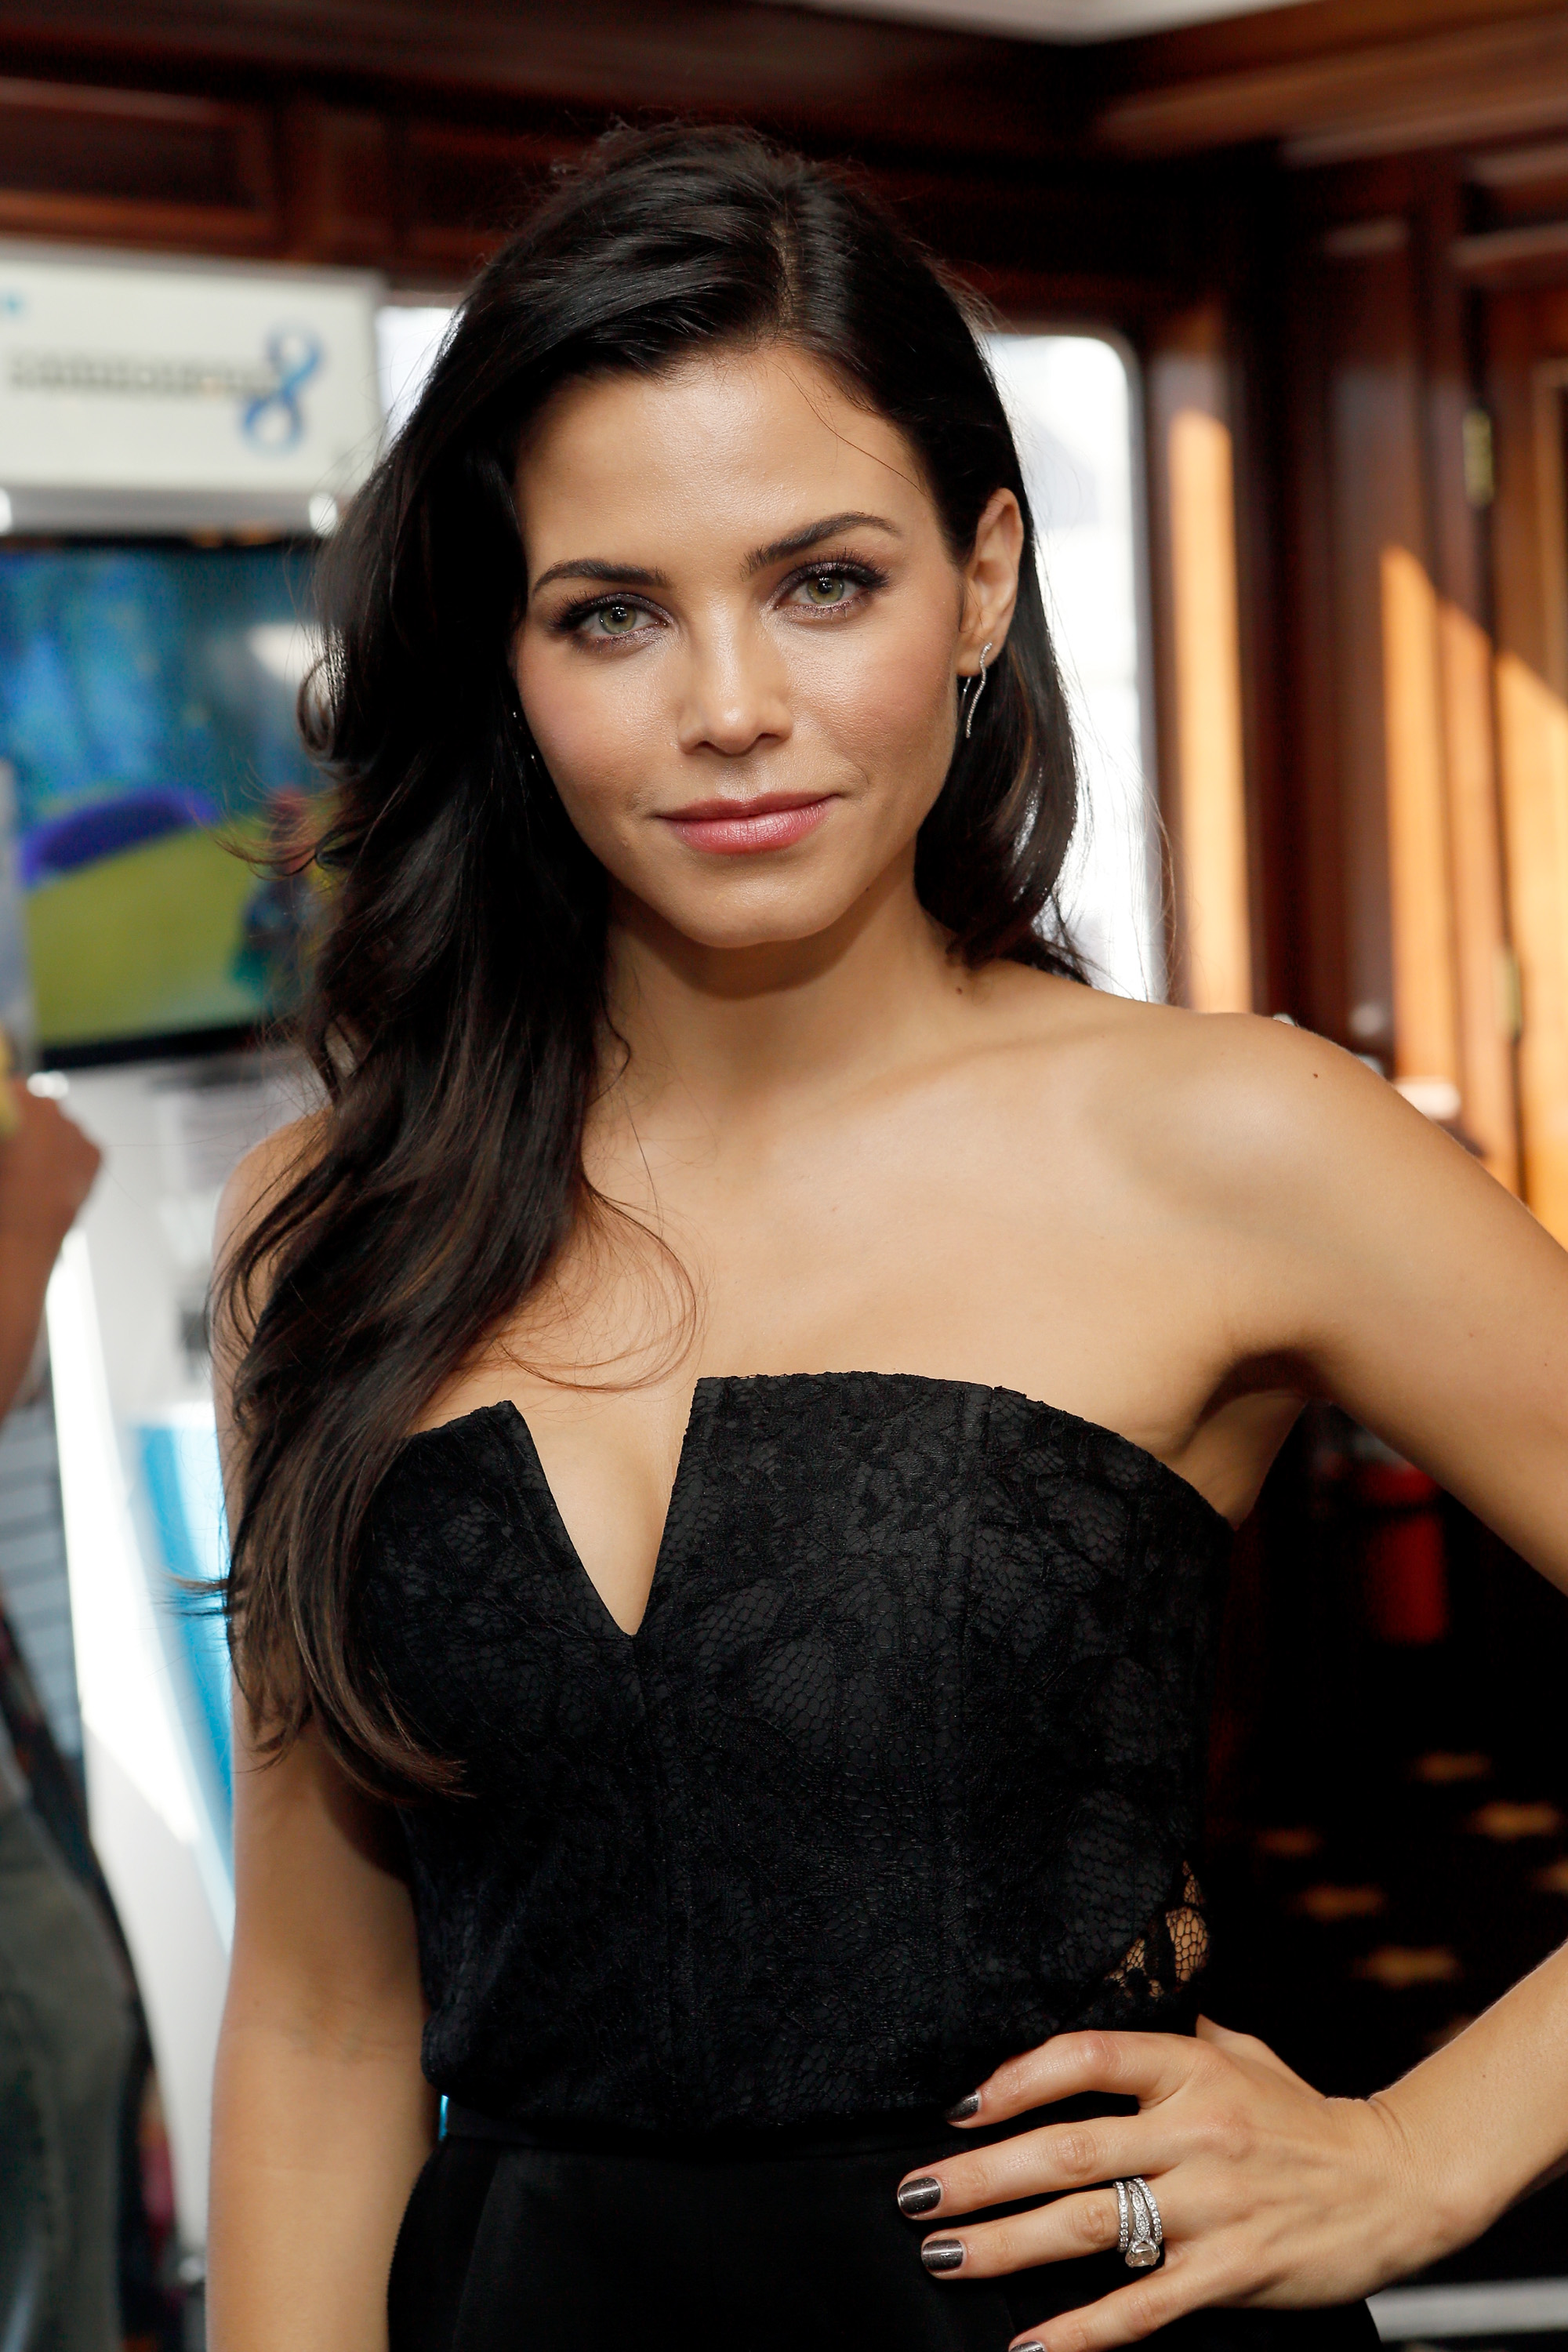 Backup Image Jenna Dewan Tatum Has A Dance Background Outside Of Step